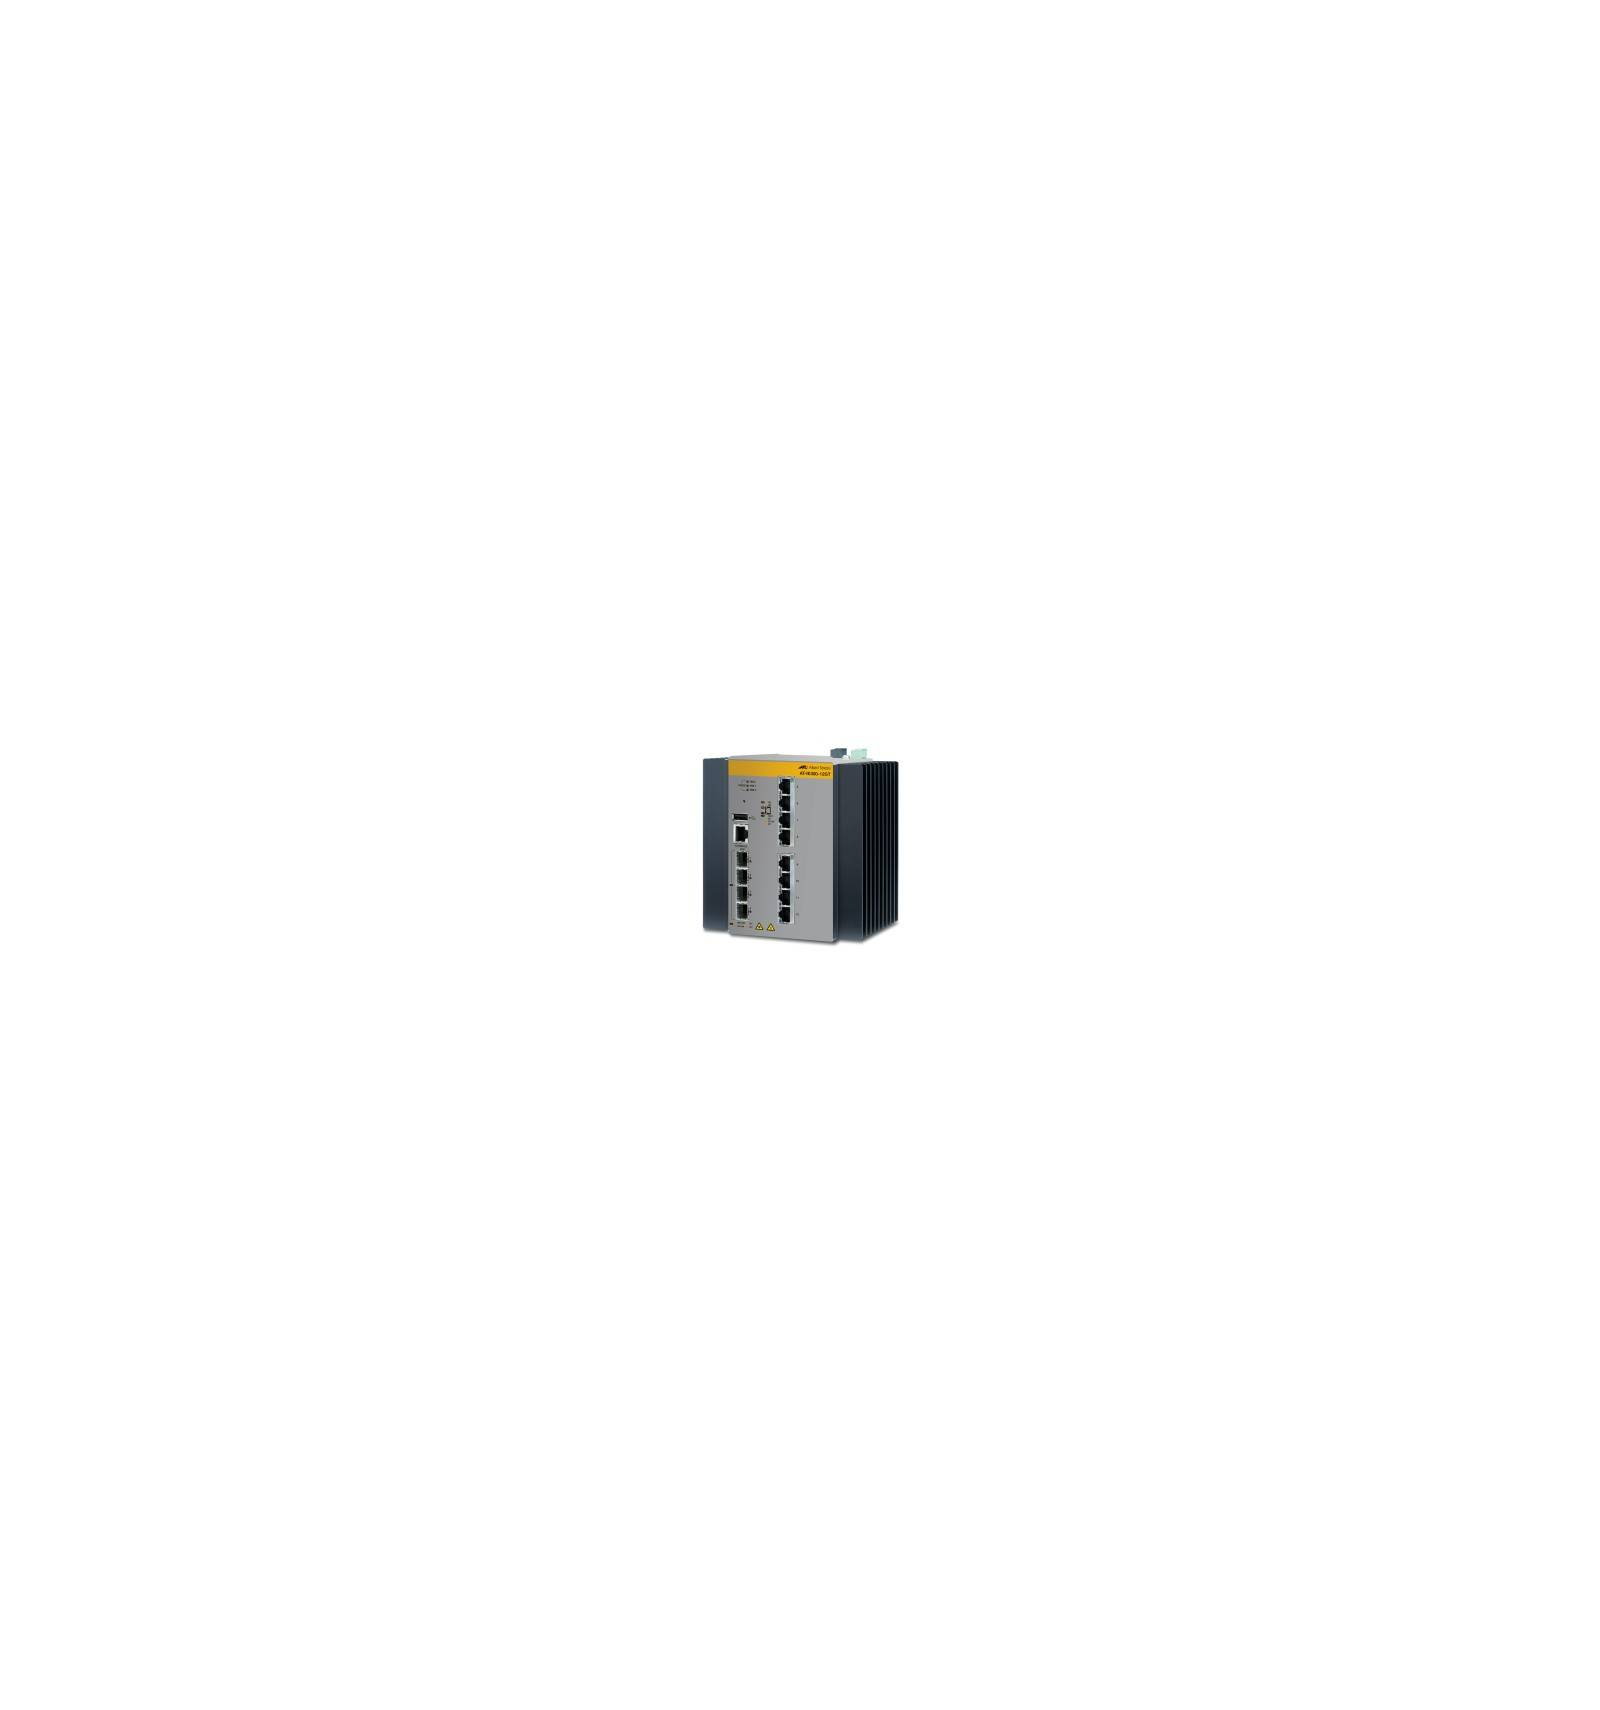 Allied Telesis AT-IE300-12GT-80 Managed network switch L3 Gigabit Ethernet (10/100/1000) Musta, Harmaa